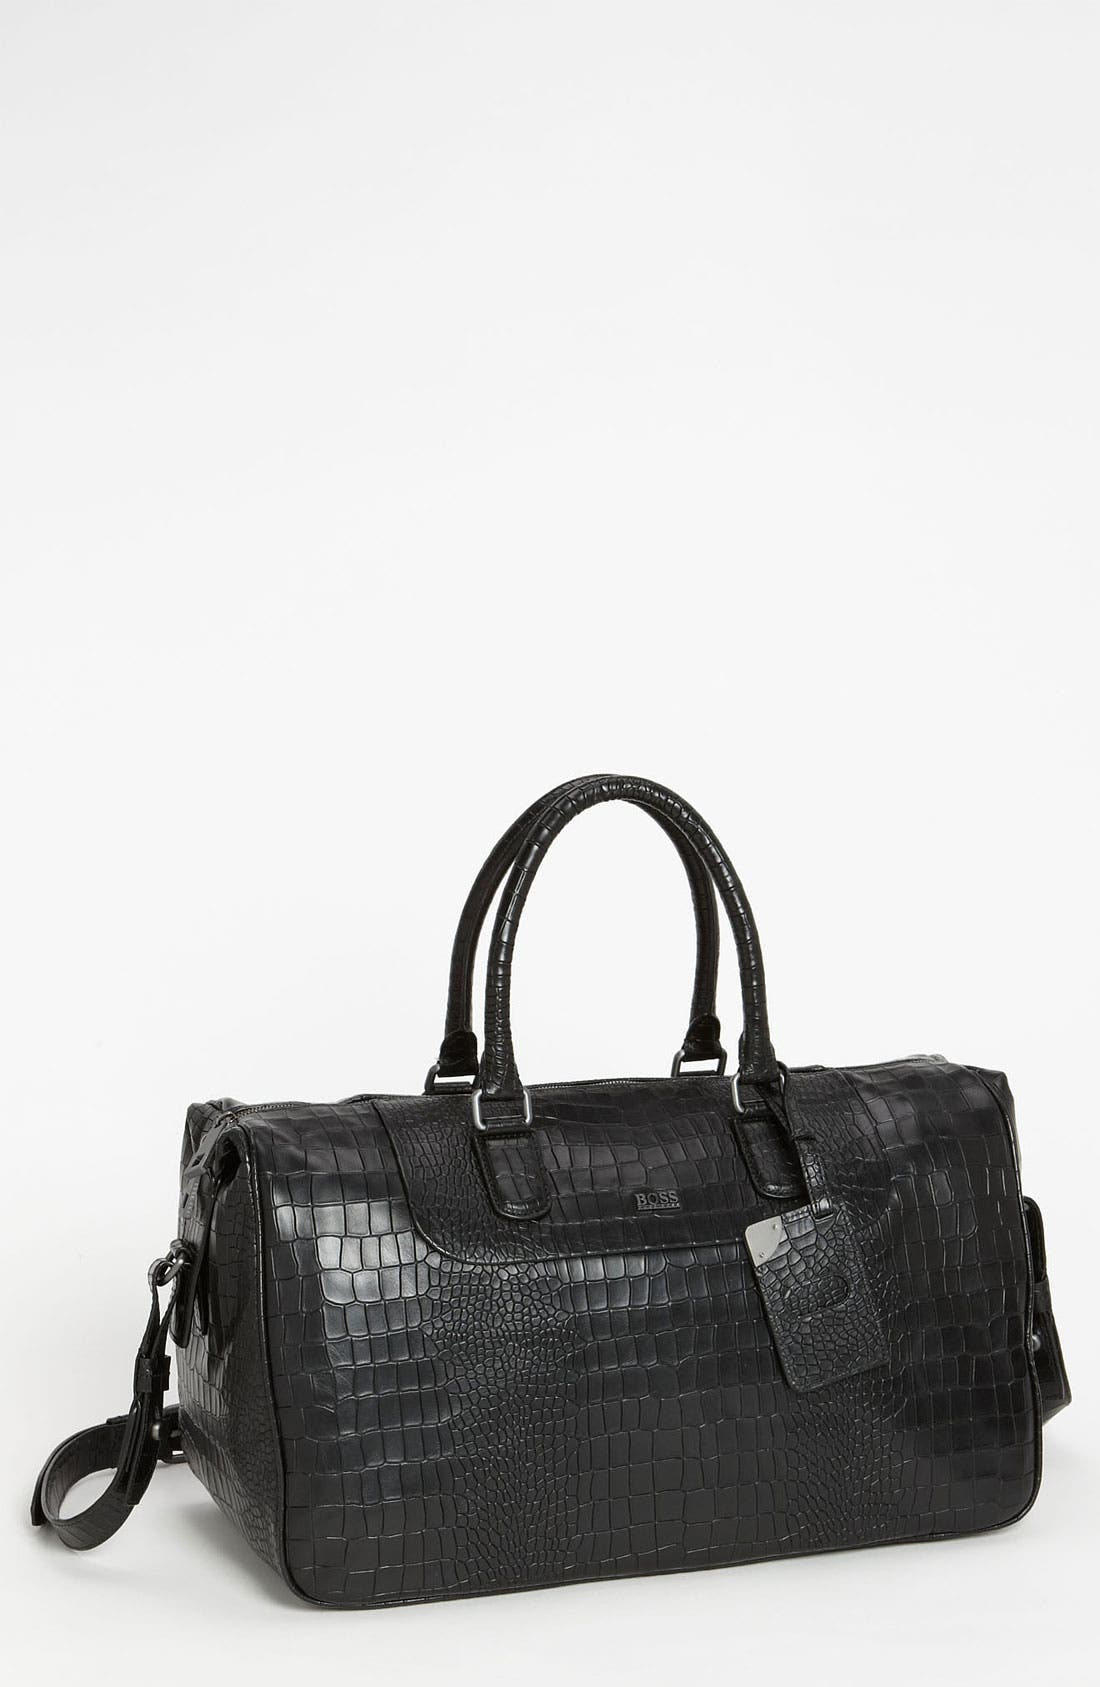 Alternate Image 1 Selected - BOSS Black 'Ector' Duffel Bag